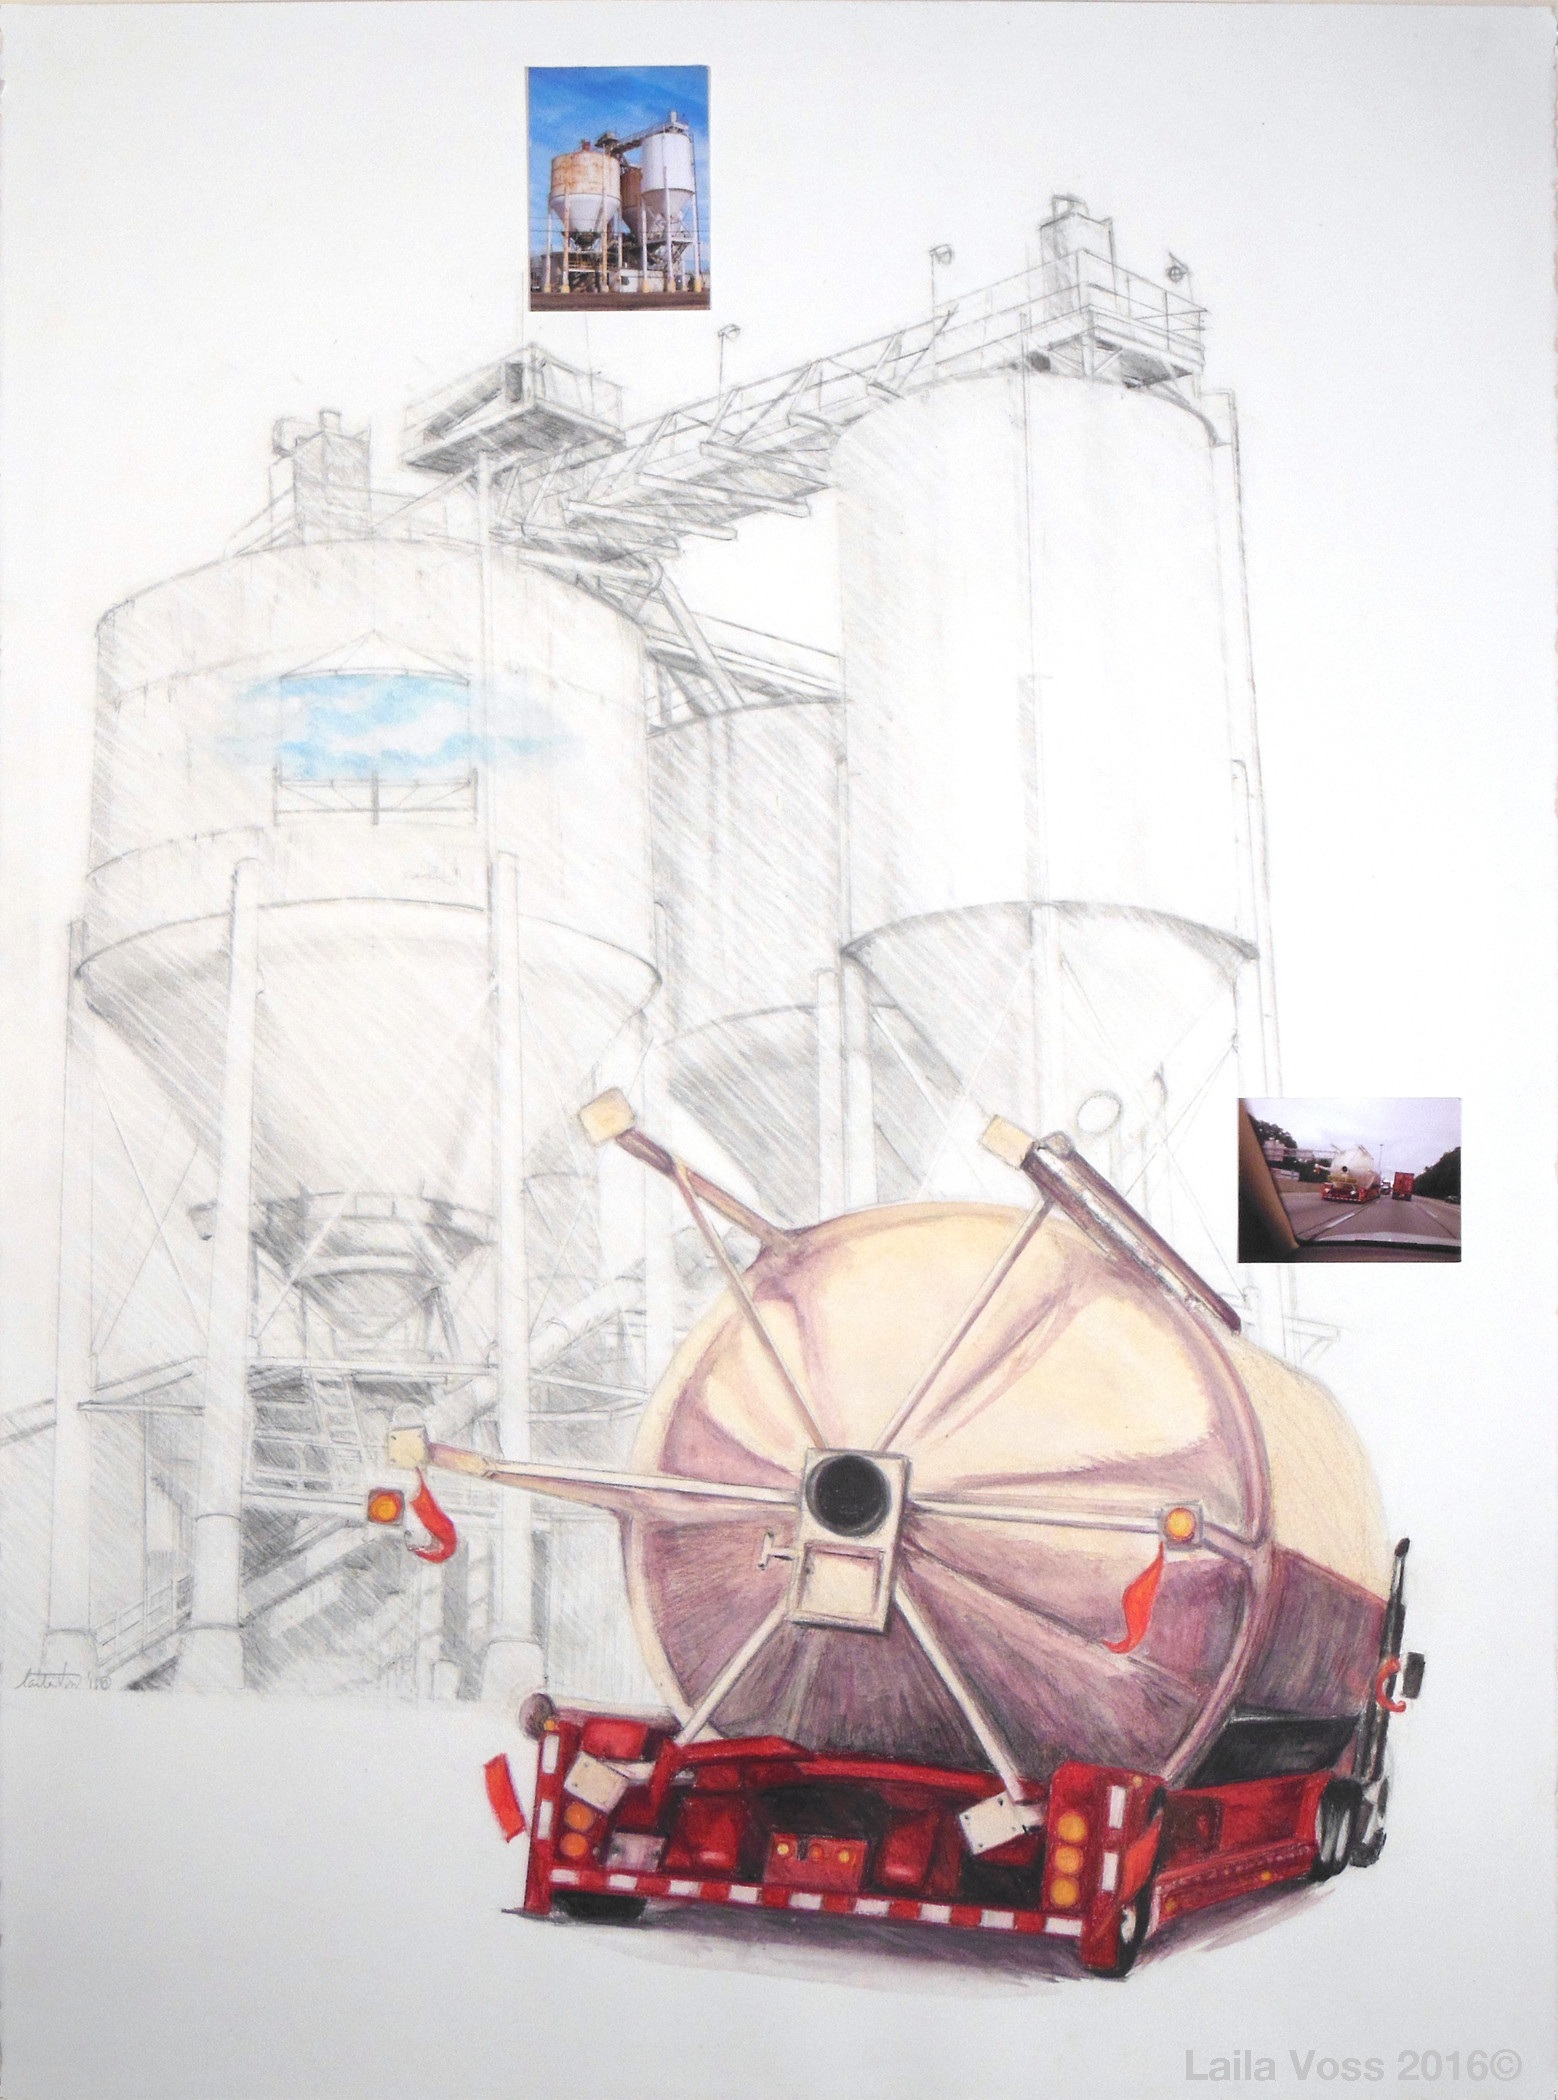 """Locus of Potential/Site of Drifting 5. 2016. Graphite, watercolor pencils, photographs on American Masters paper. 30"""" x 22""""."""